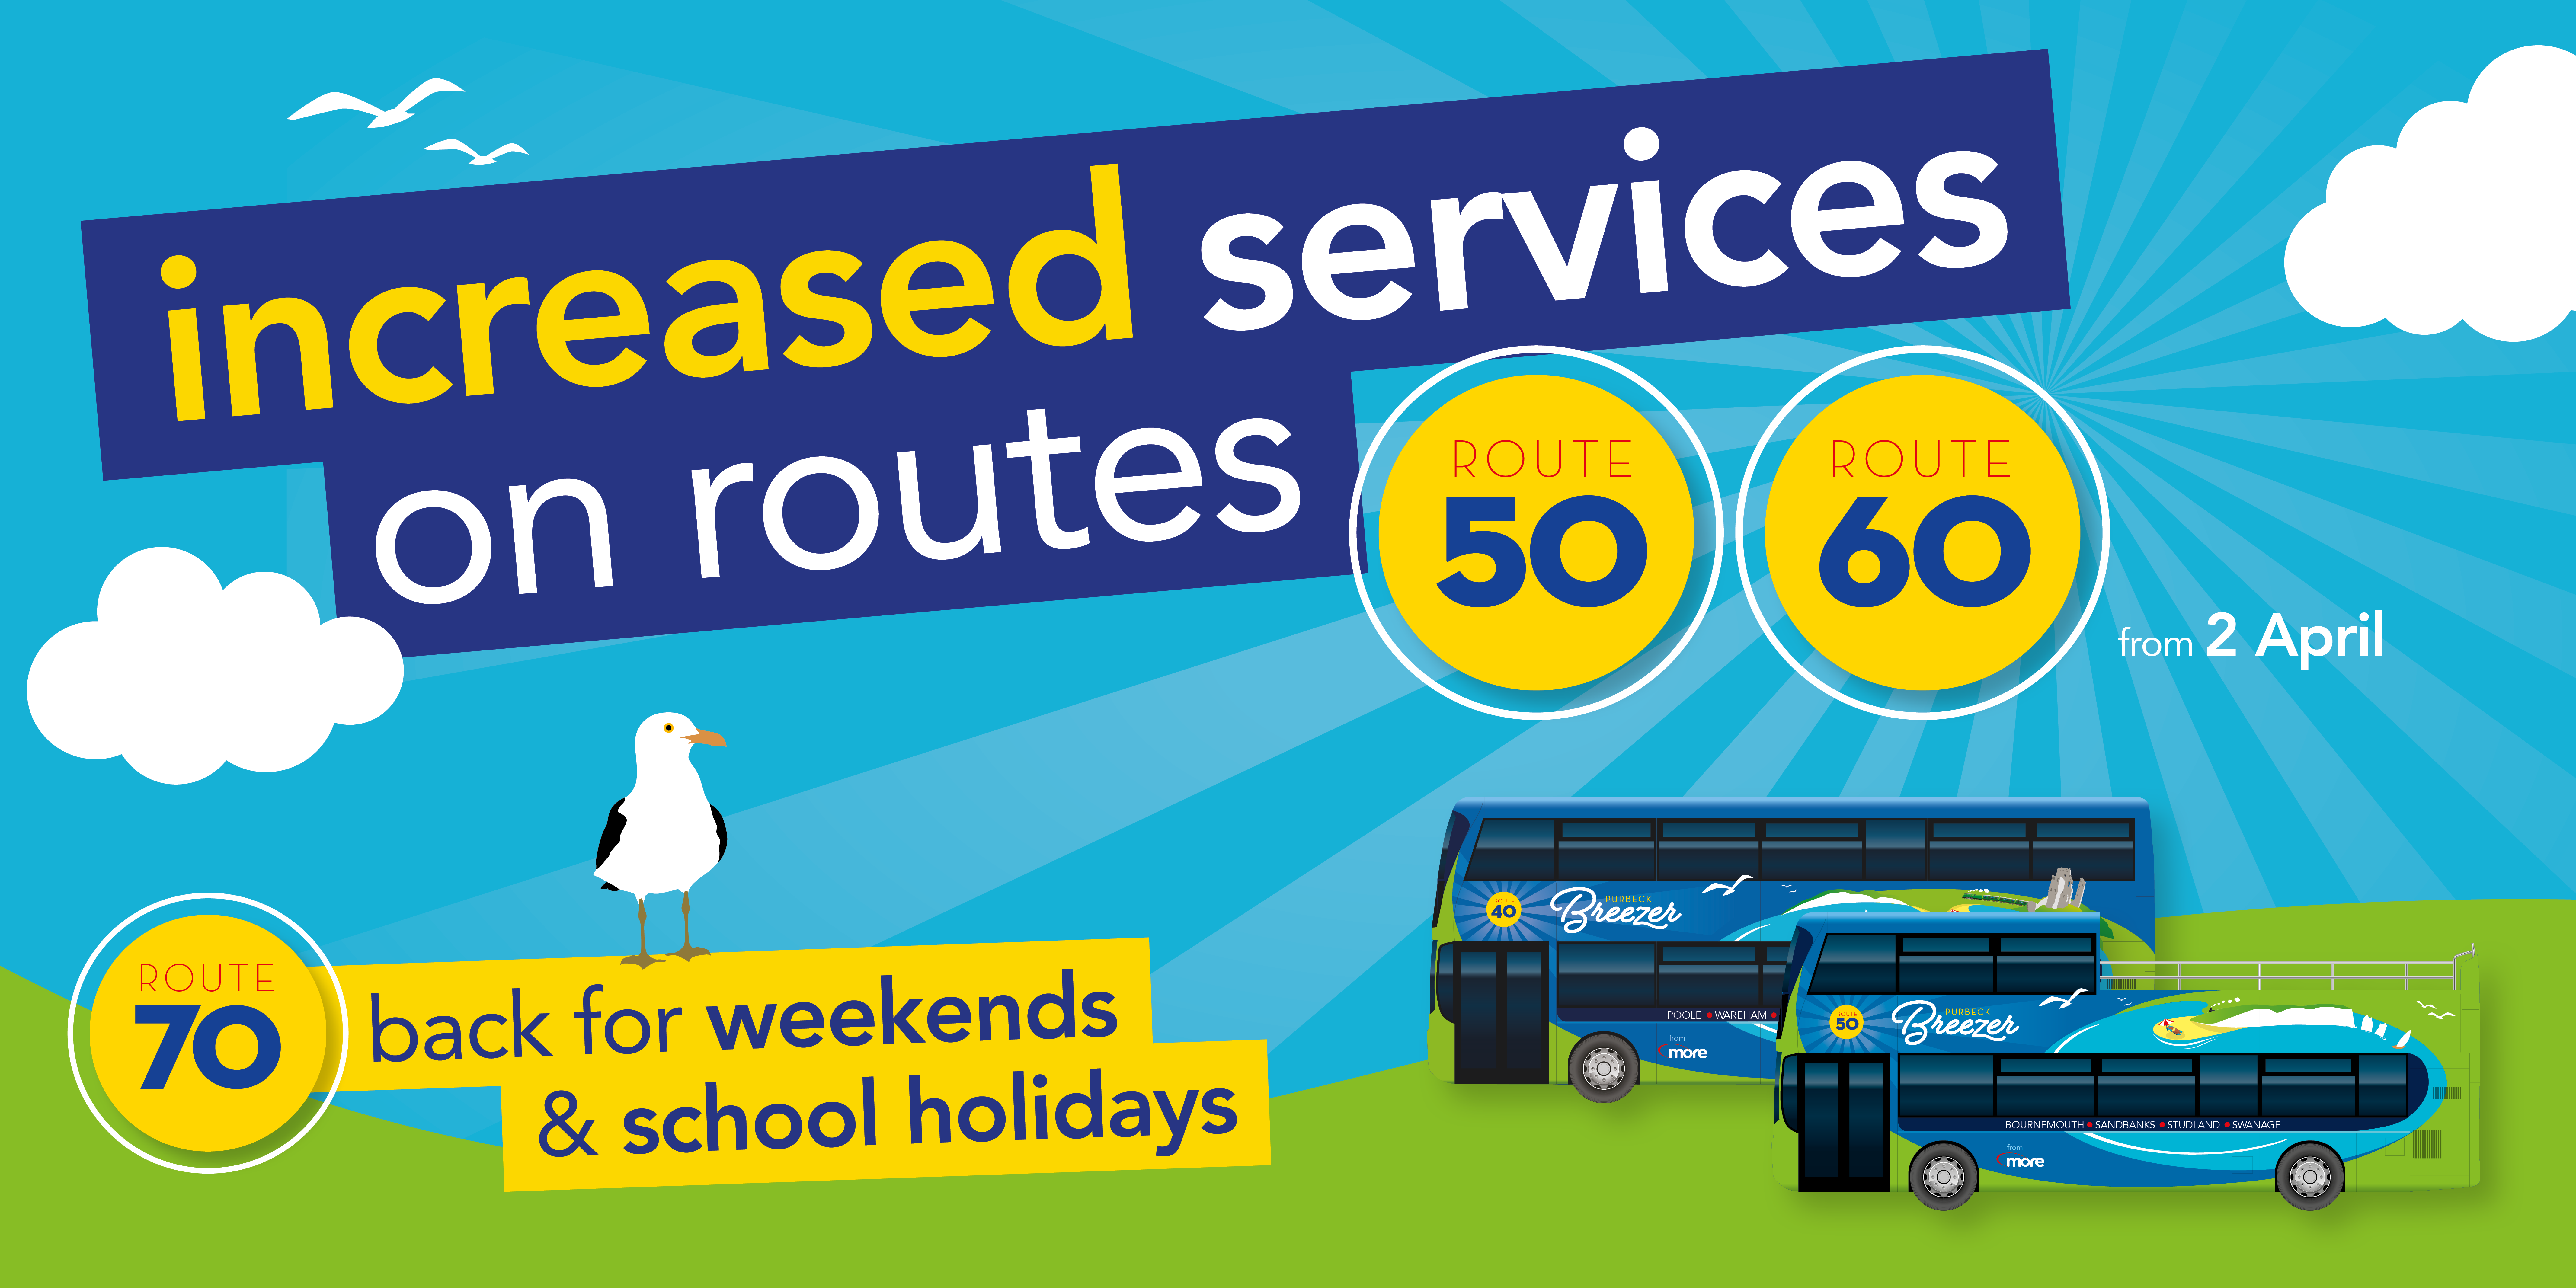 Image of two Purbeck Breezer buses with text 'increased services on route 50 and 60 from 2nd April. Route 70 back for weekends and school holidays.'